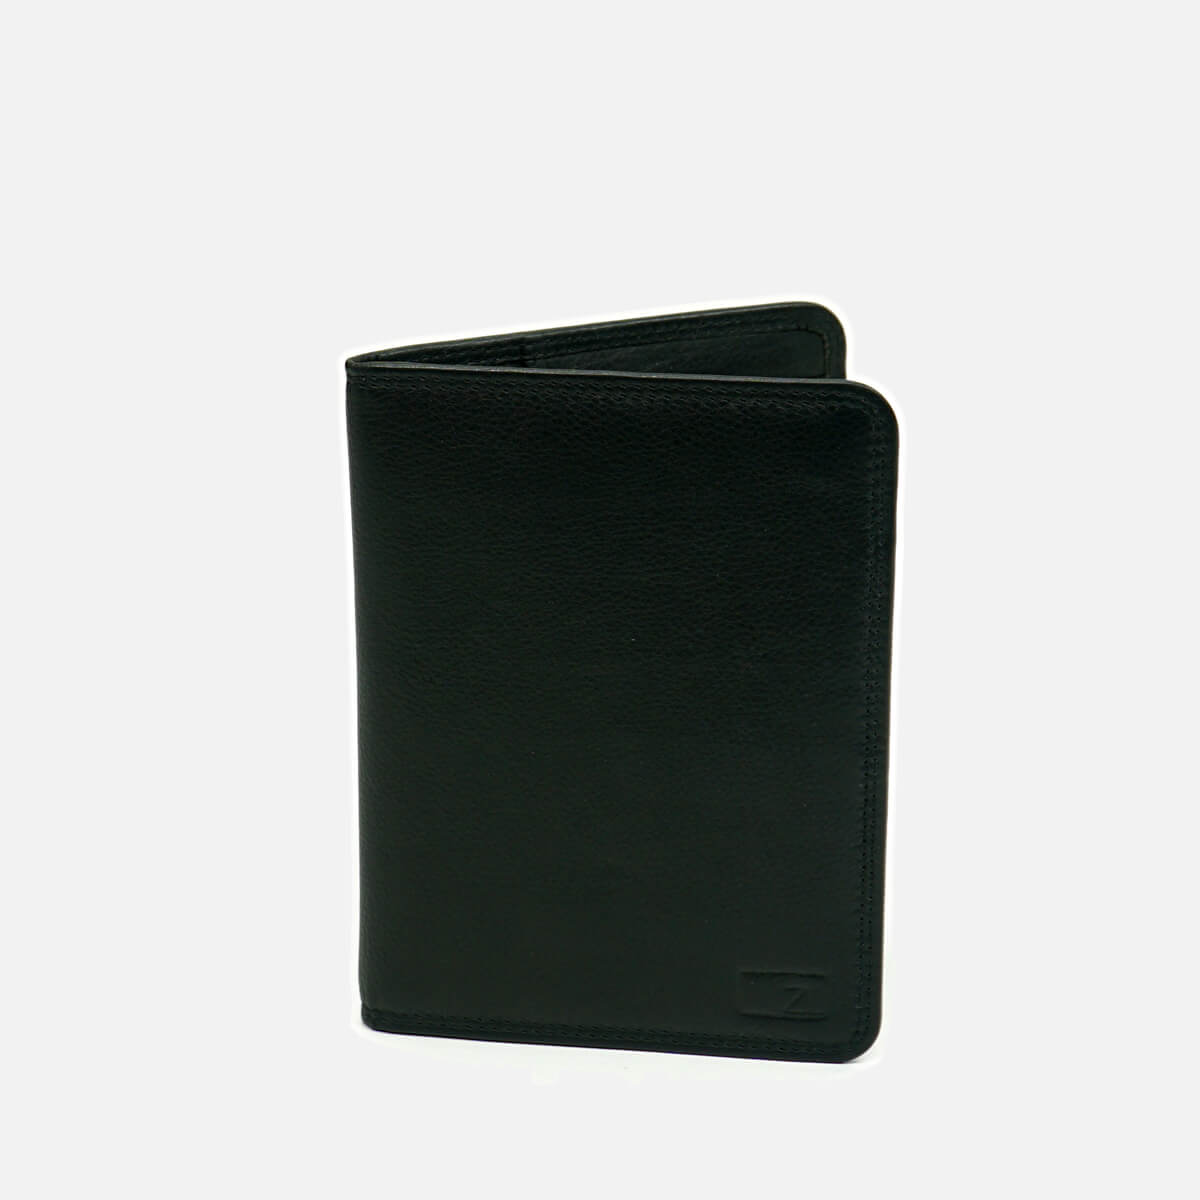 Zoomlite RFID Blocking Travel Passport Wallet